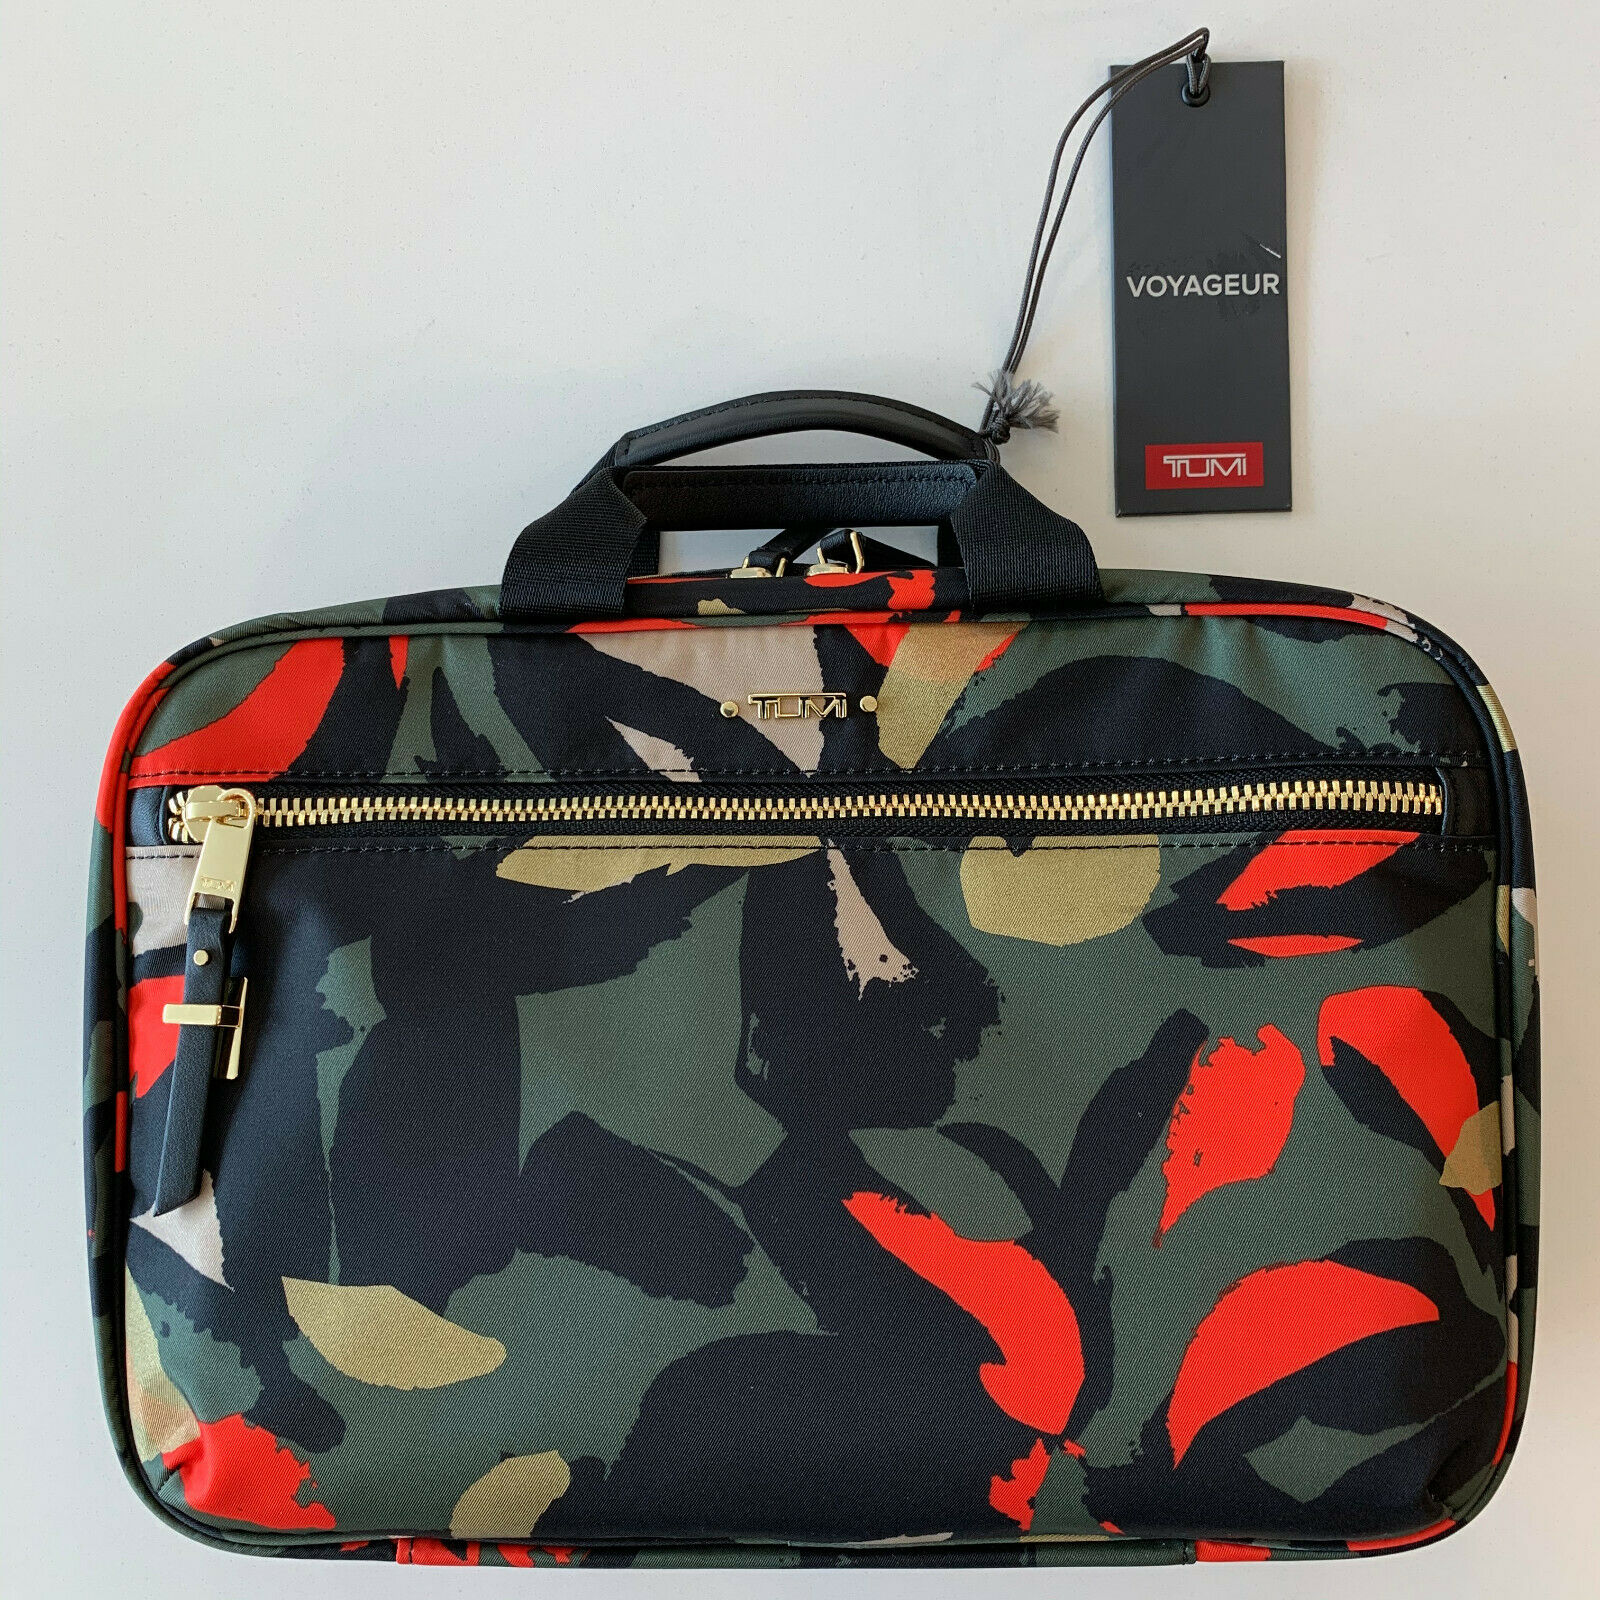 voyageur madina cosmetic bag lily abstract